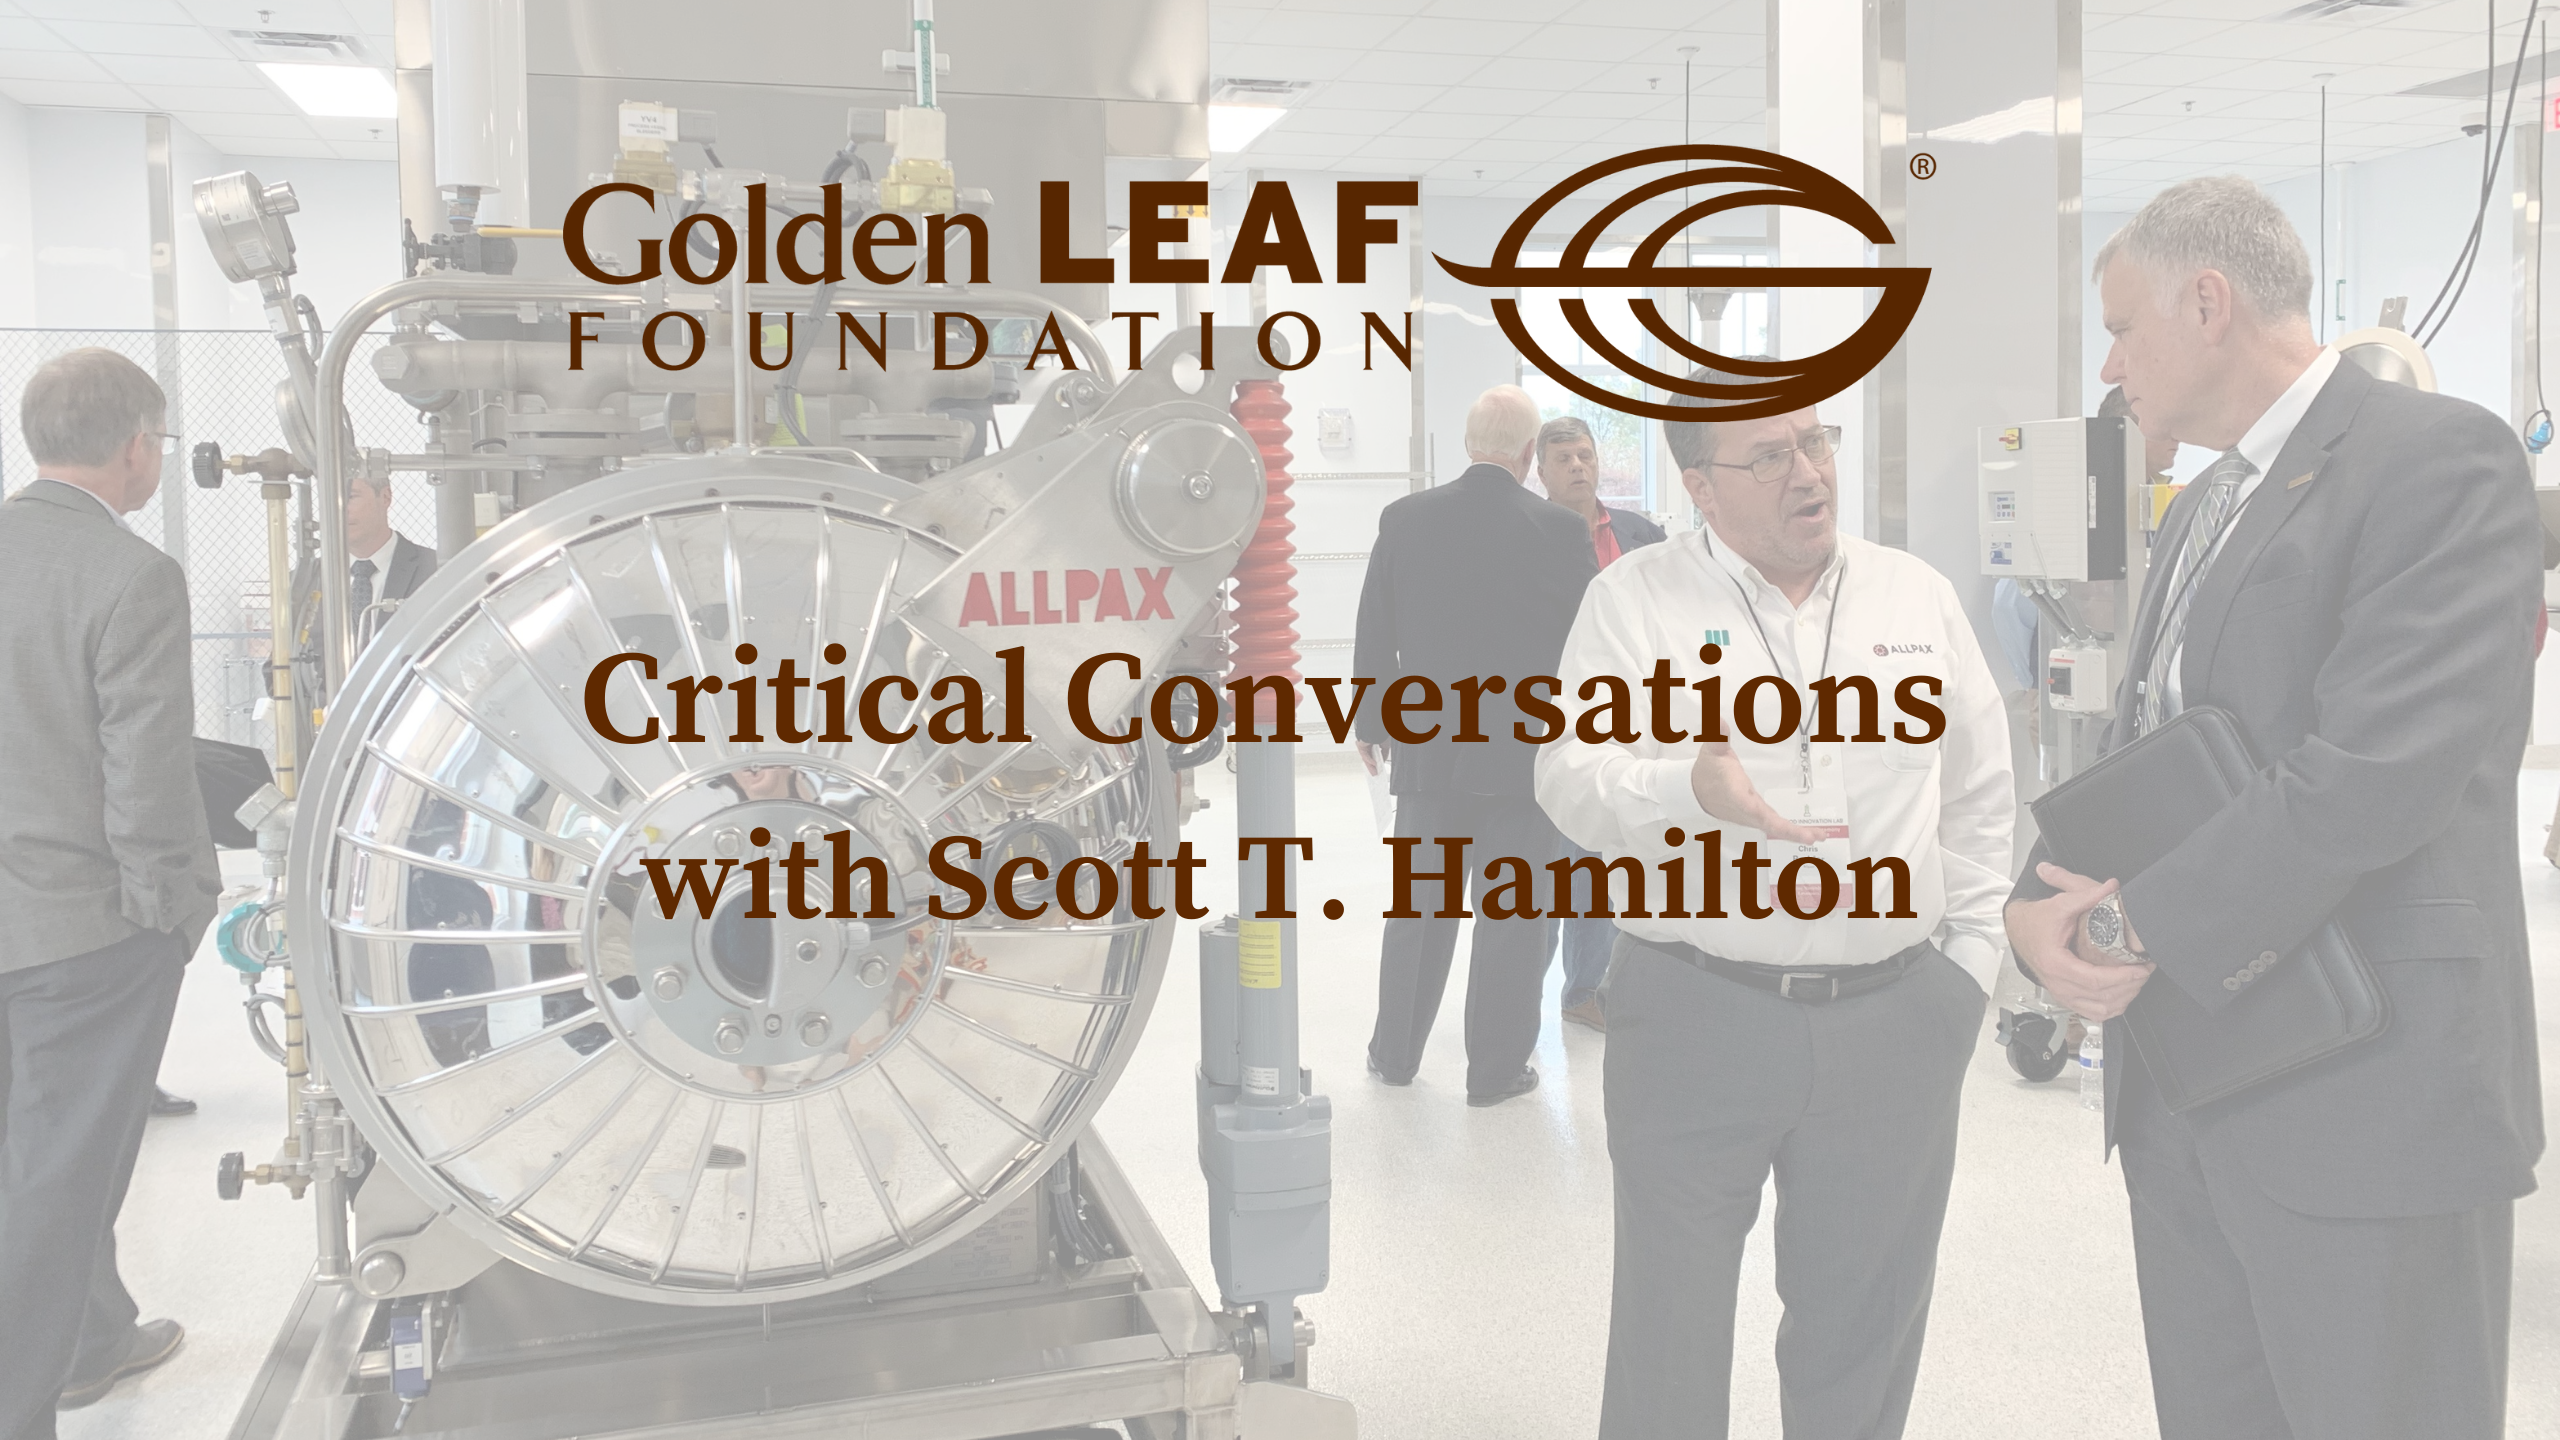 Critical Conversations with Scott T. Hamilton featuring Tracy Doaks, President and Chief Executive Officer of MCNC